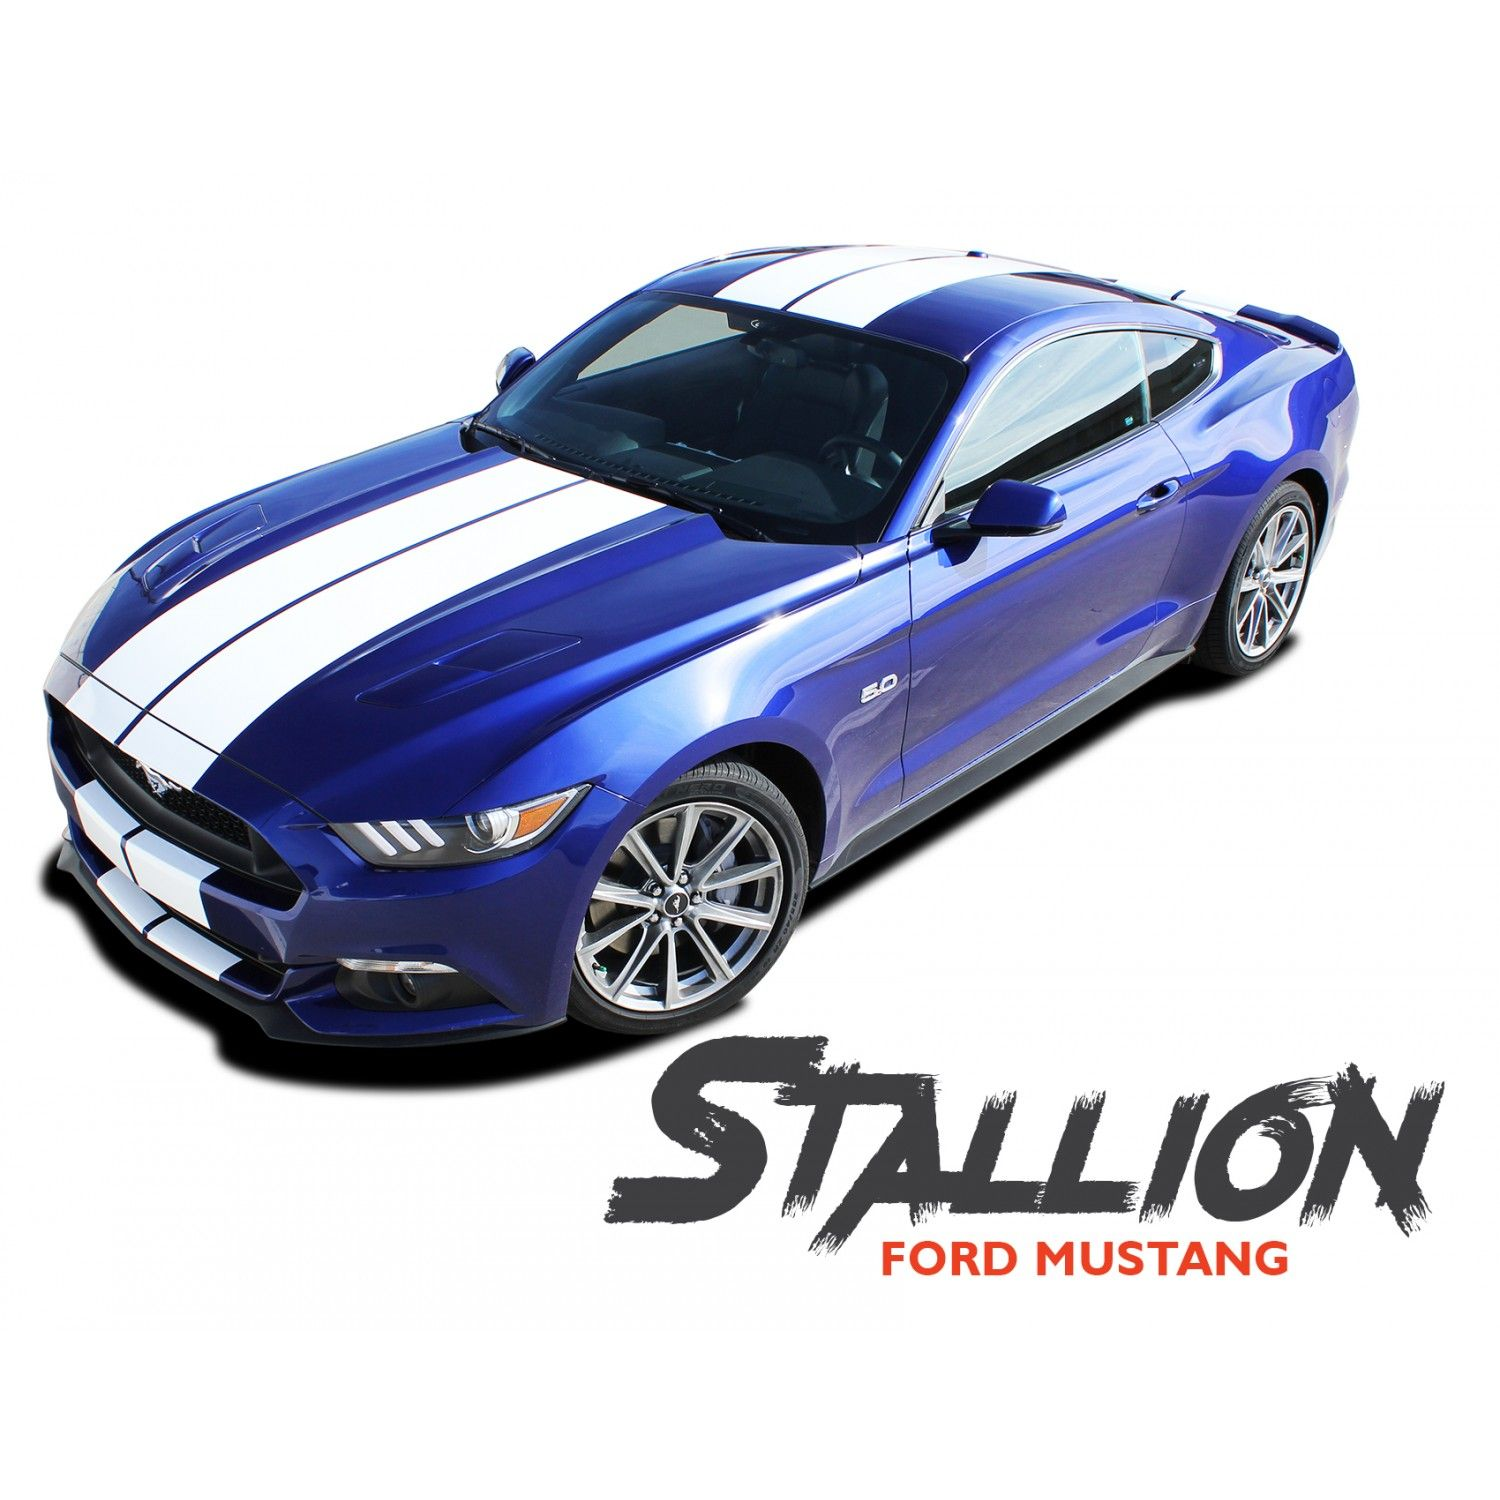 Ford Mustang Stallion Lemans Style 10 Inch Wide Racing Rally Stripes Vinyl Graphics Decals Kit 2015 2016 2017 Rally Stripes Vinyl Graphics Ford Mustang